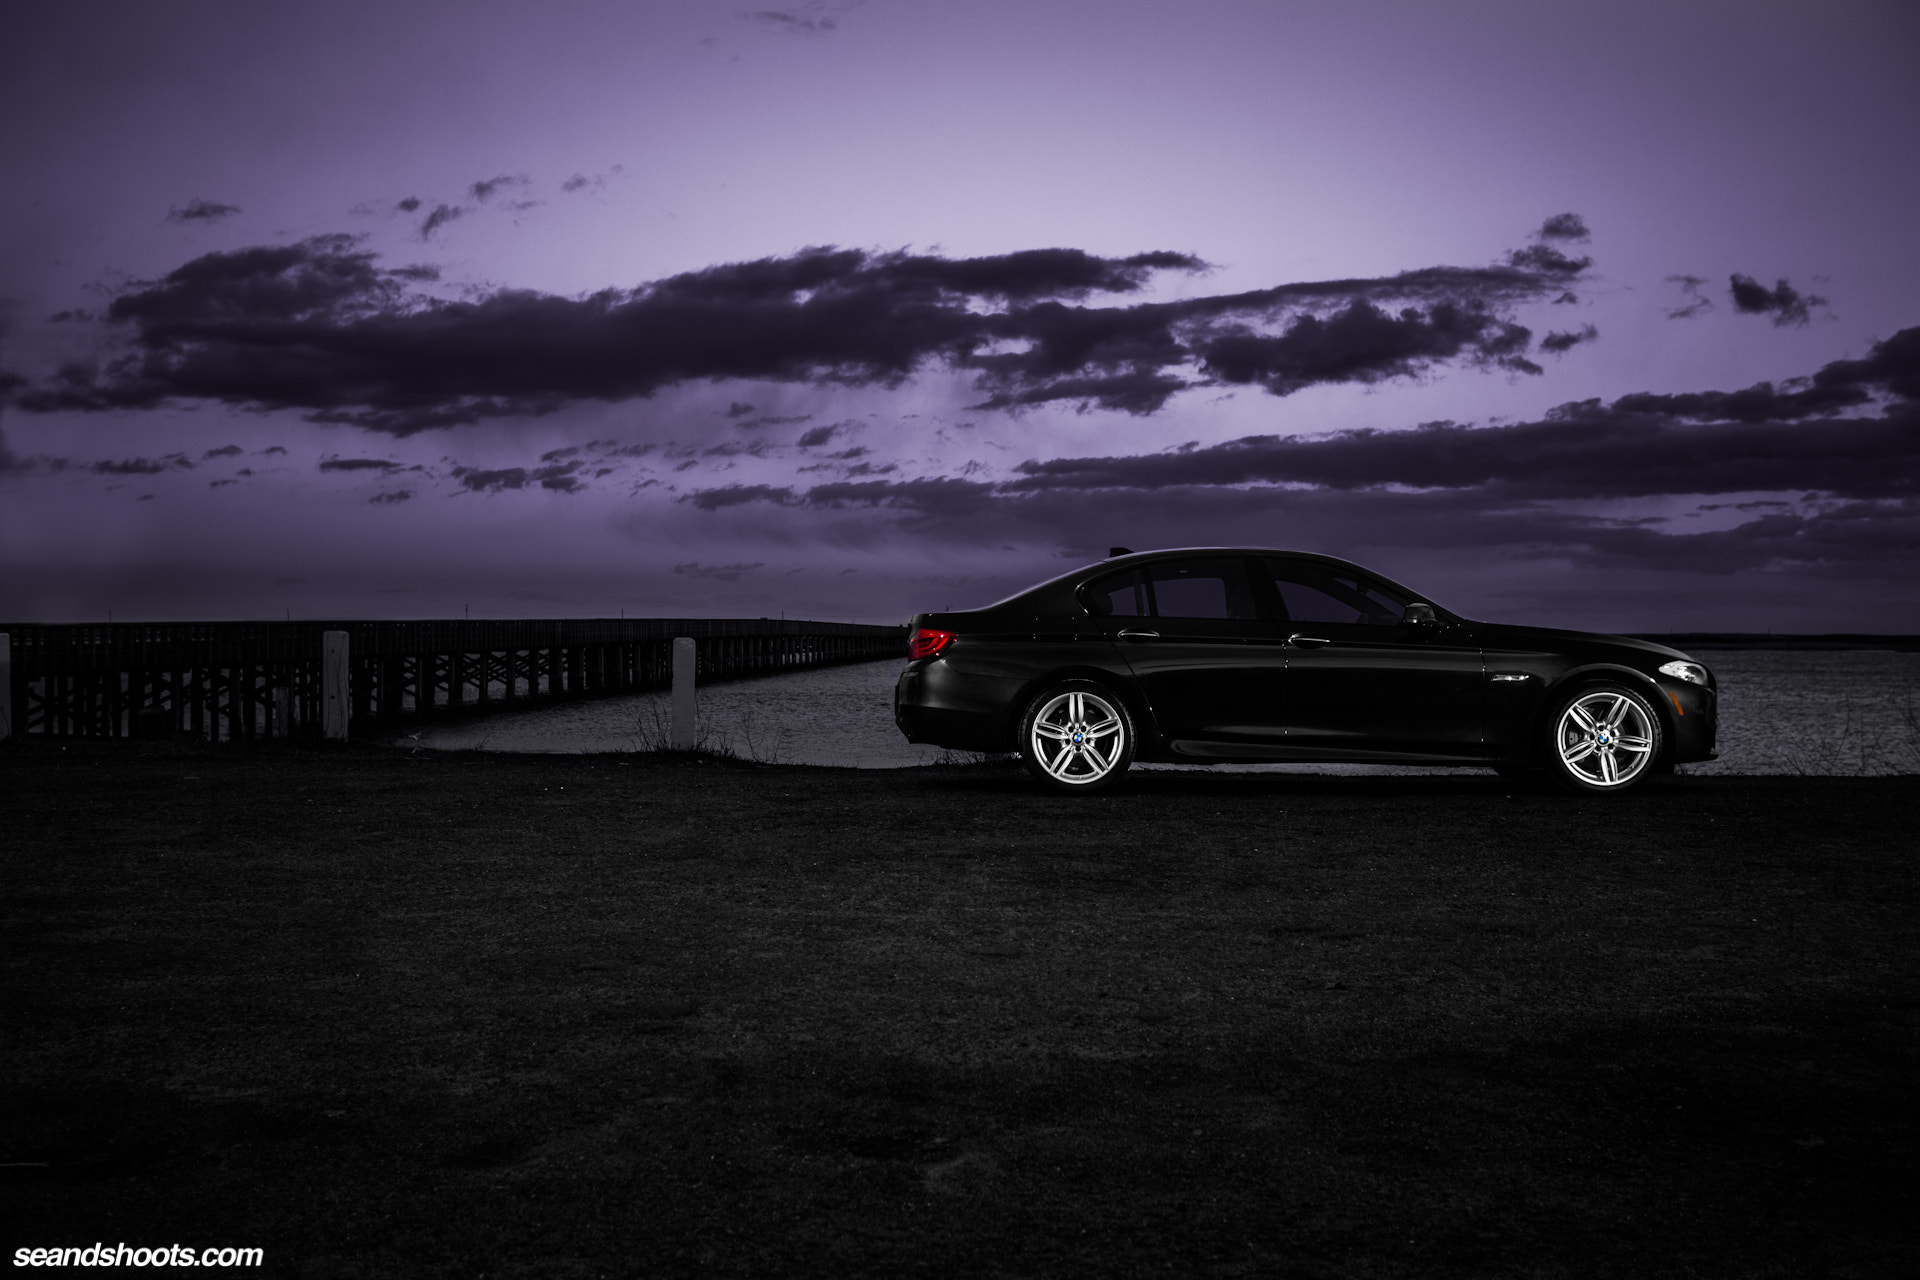 Photograph BMW f10 5 Series  by seandshoots .com on 500px